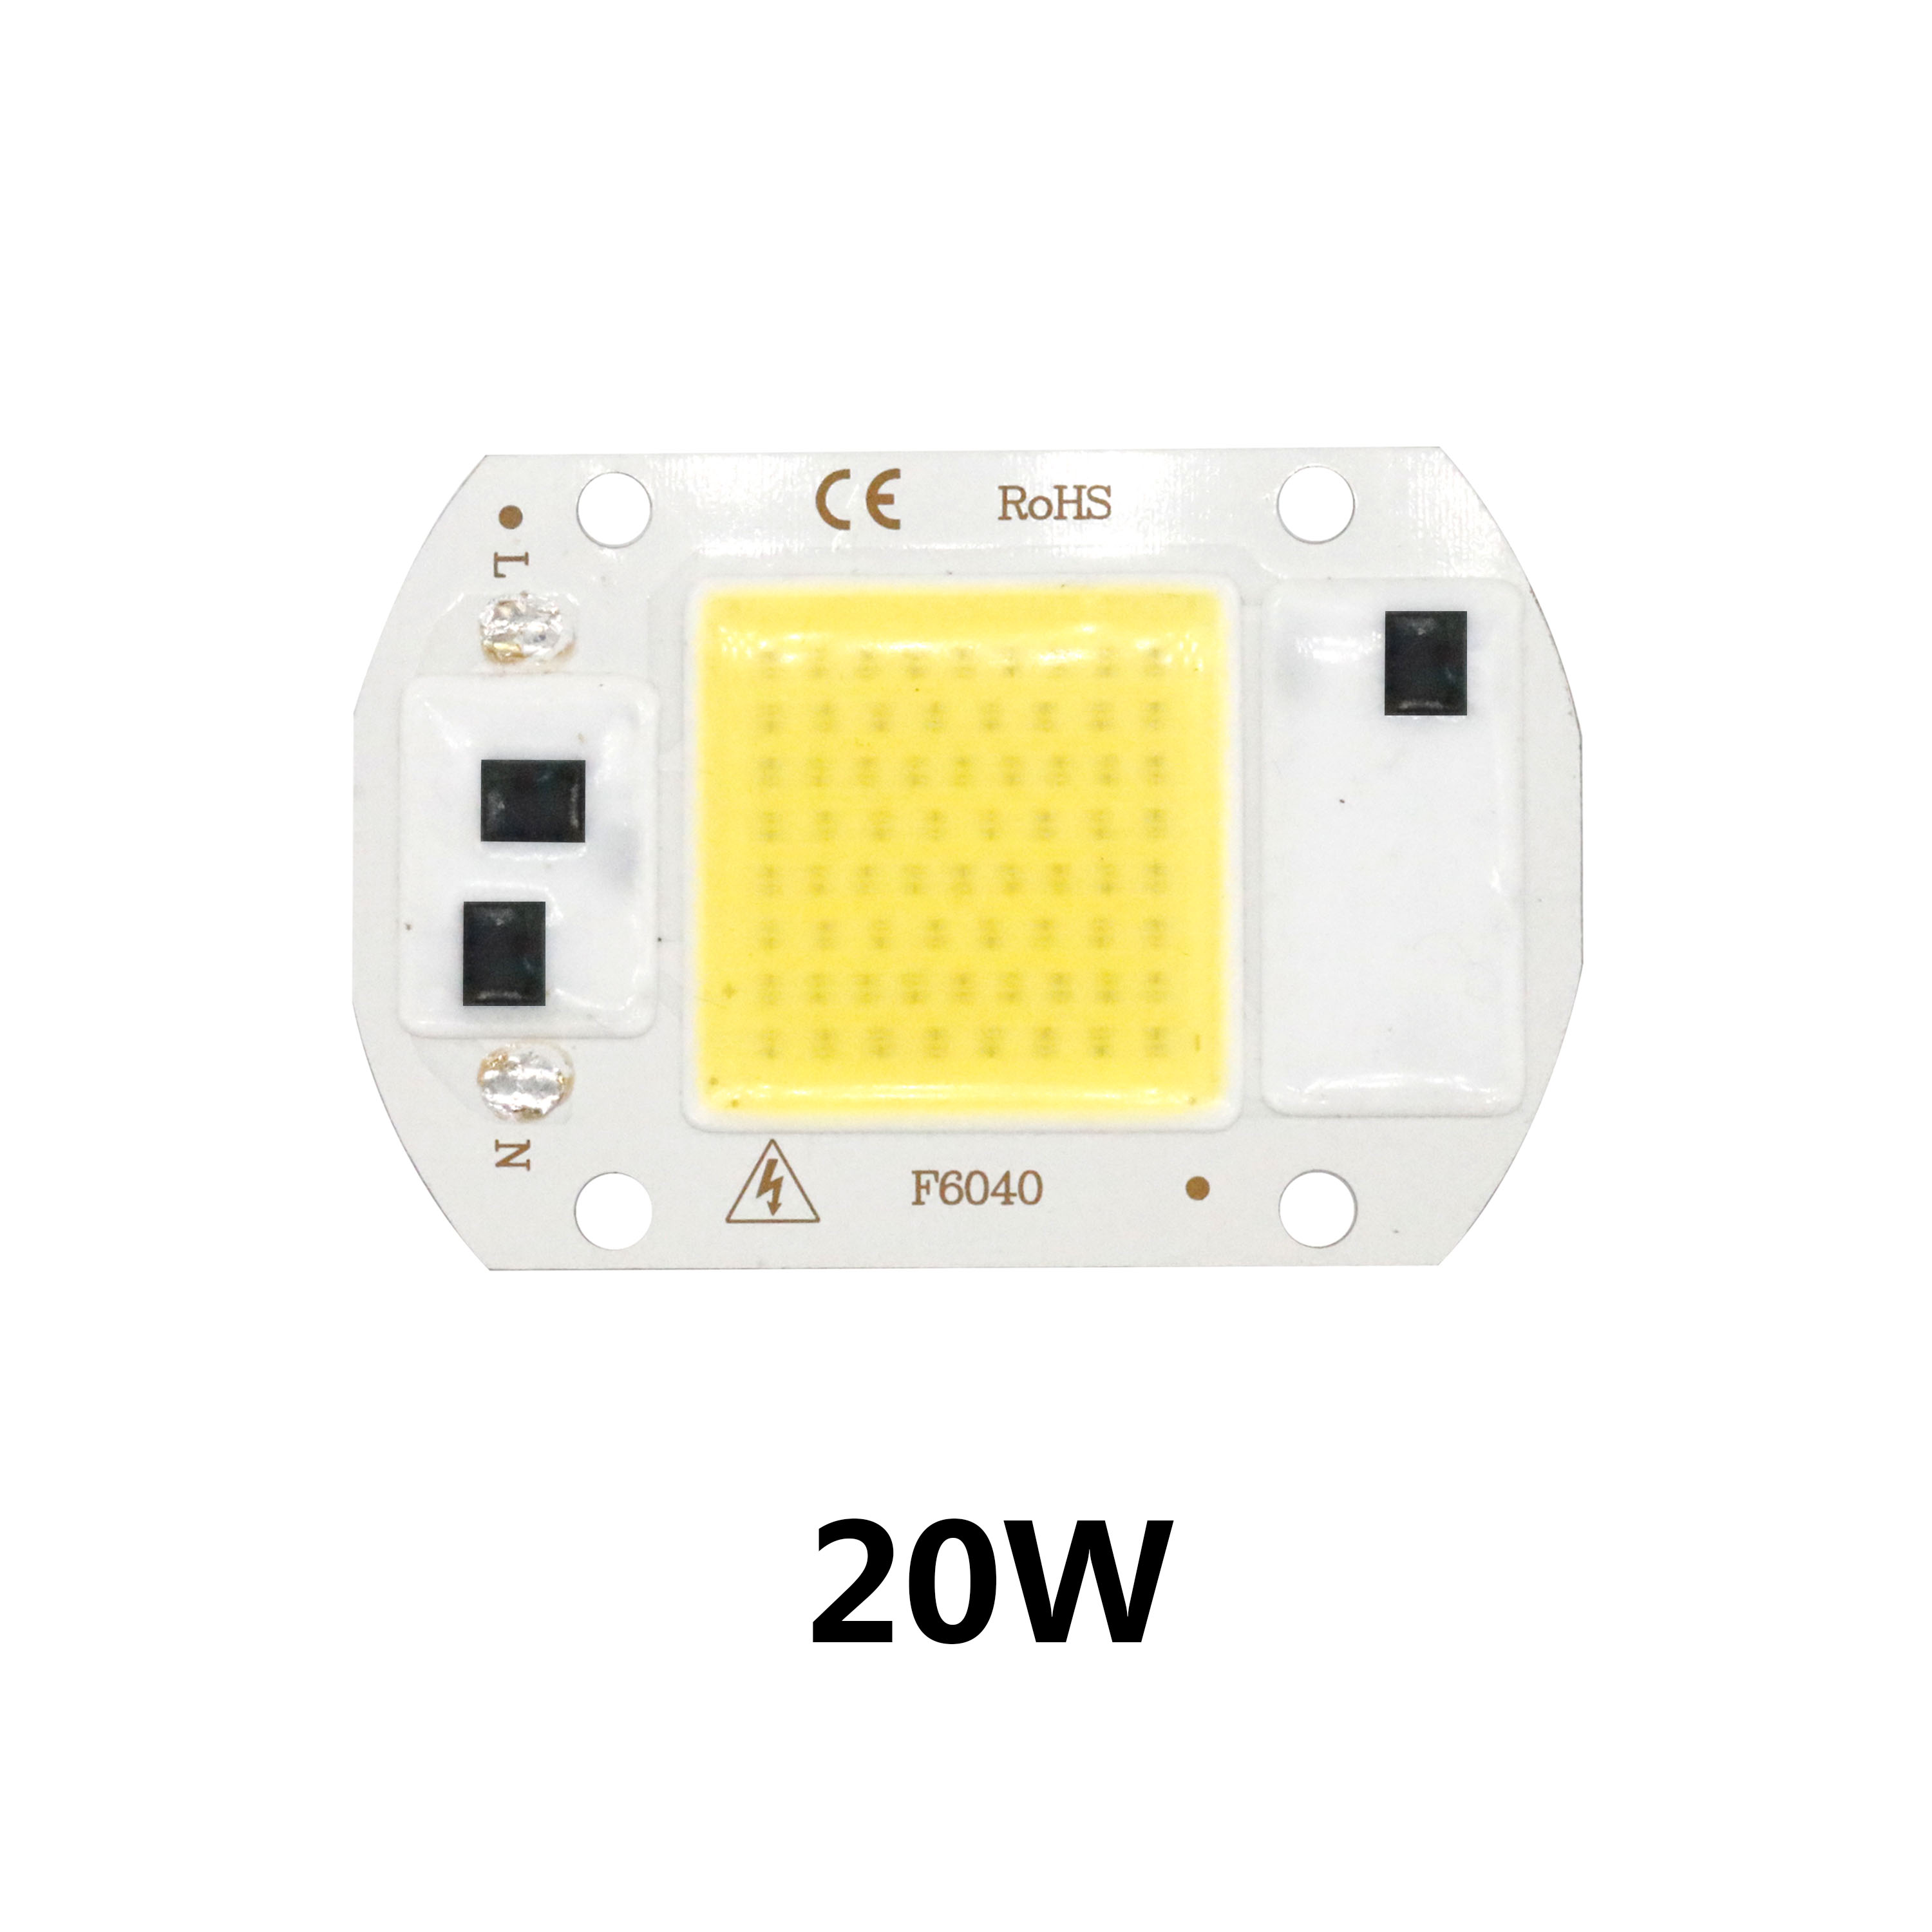 10W 20W 30W 50W LED Lamp 230VCOB Light SMD Light Engine Smart IC Chips For DIY LED Lighting Industrial Floodlight Spotlight Lamp